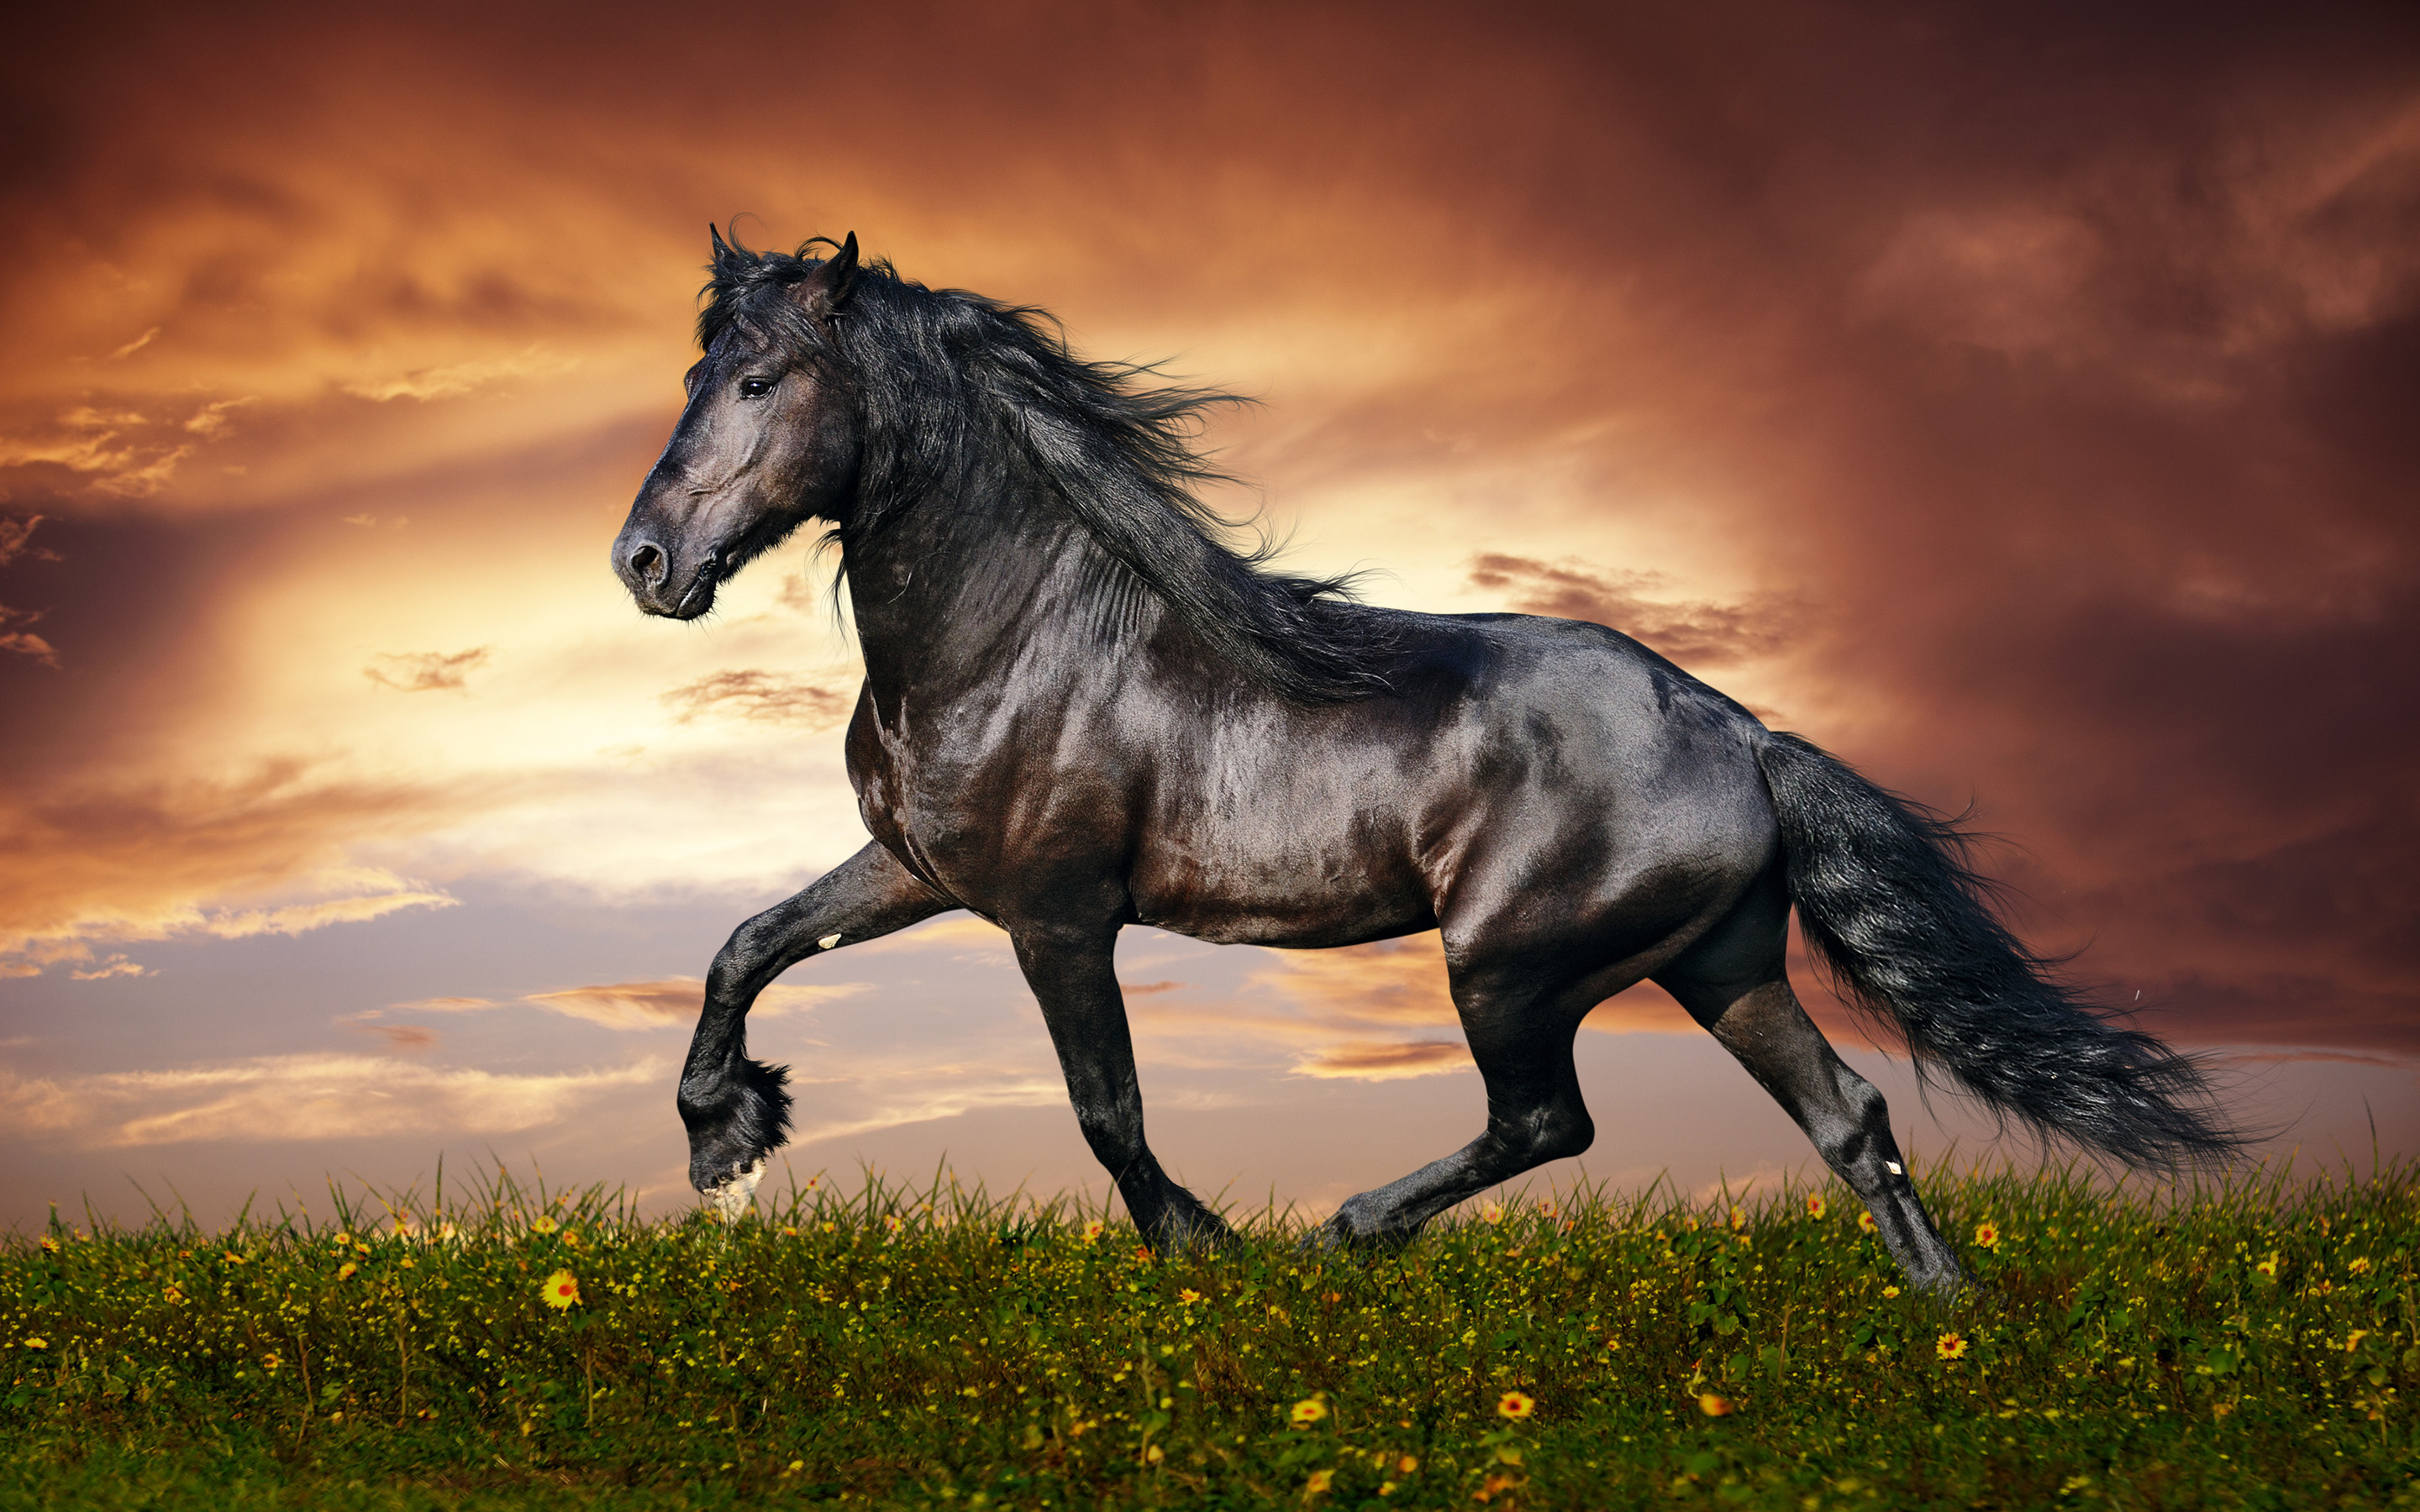 Running horse hd wallpaper download